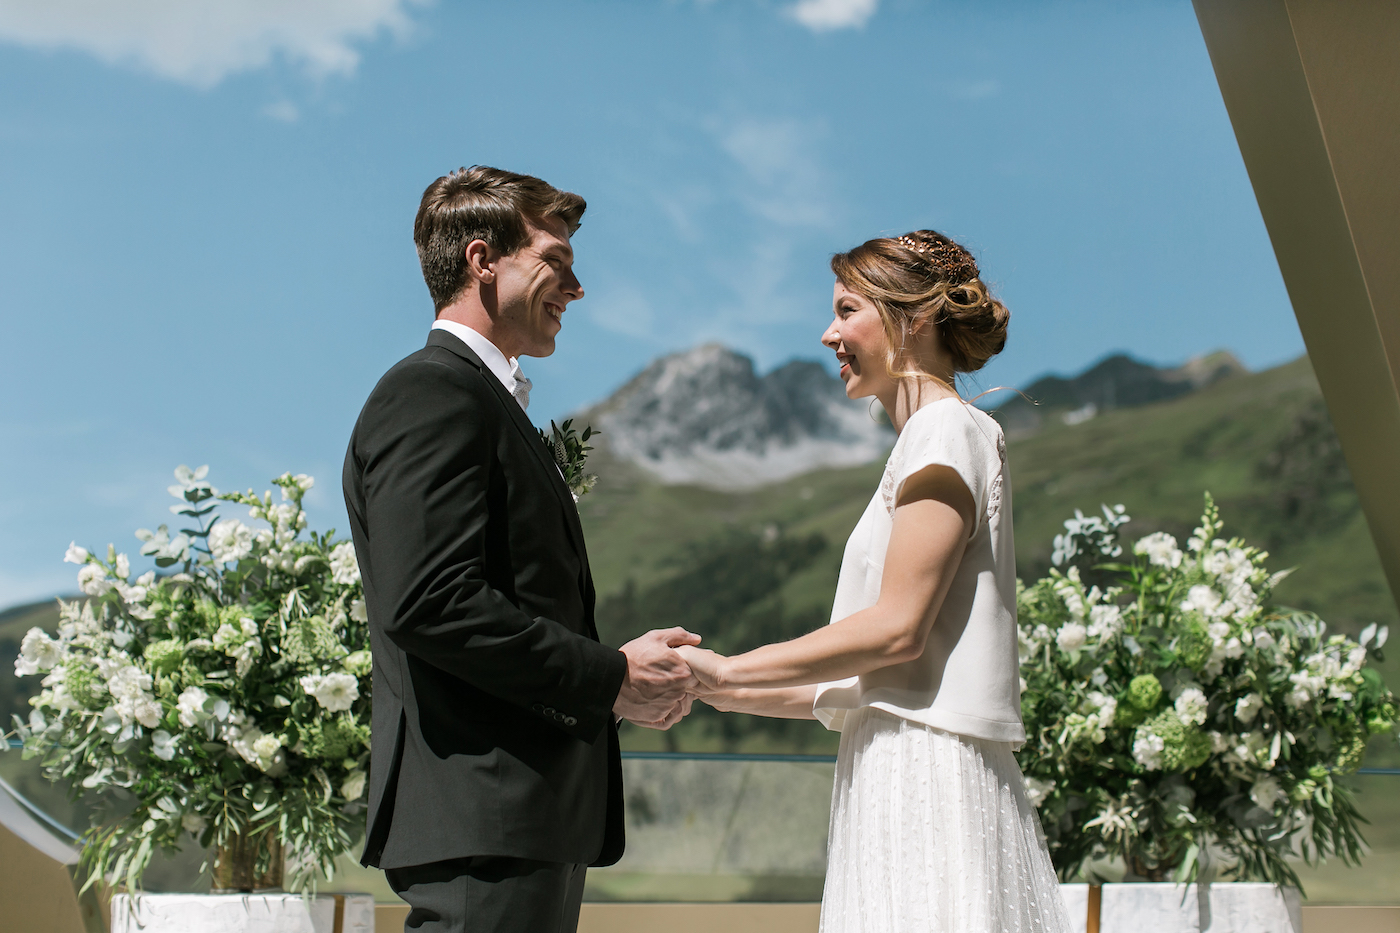 Bride and groom exchanging vows at an intimate outdoor ceremony at Intercontinental Davos with mountains as a backdrop styled by international wedding planner Elisabetta White